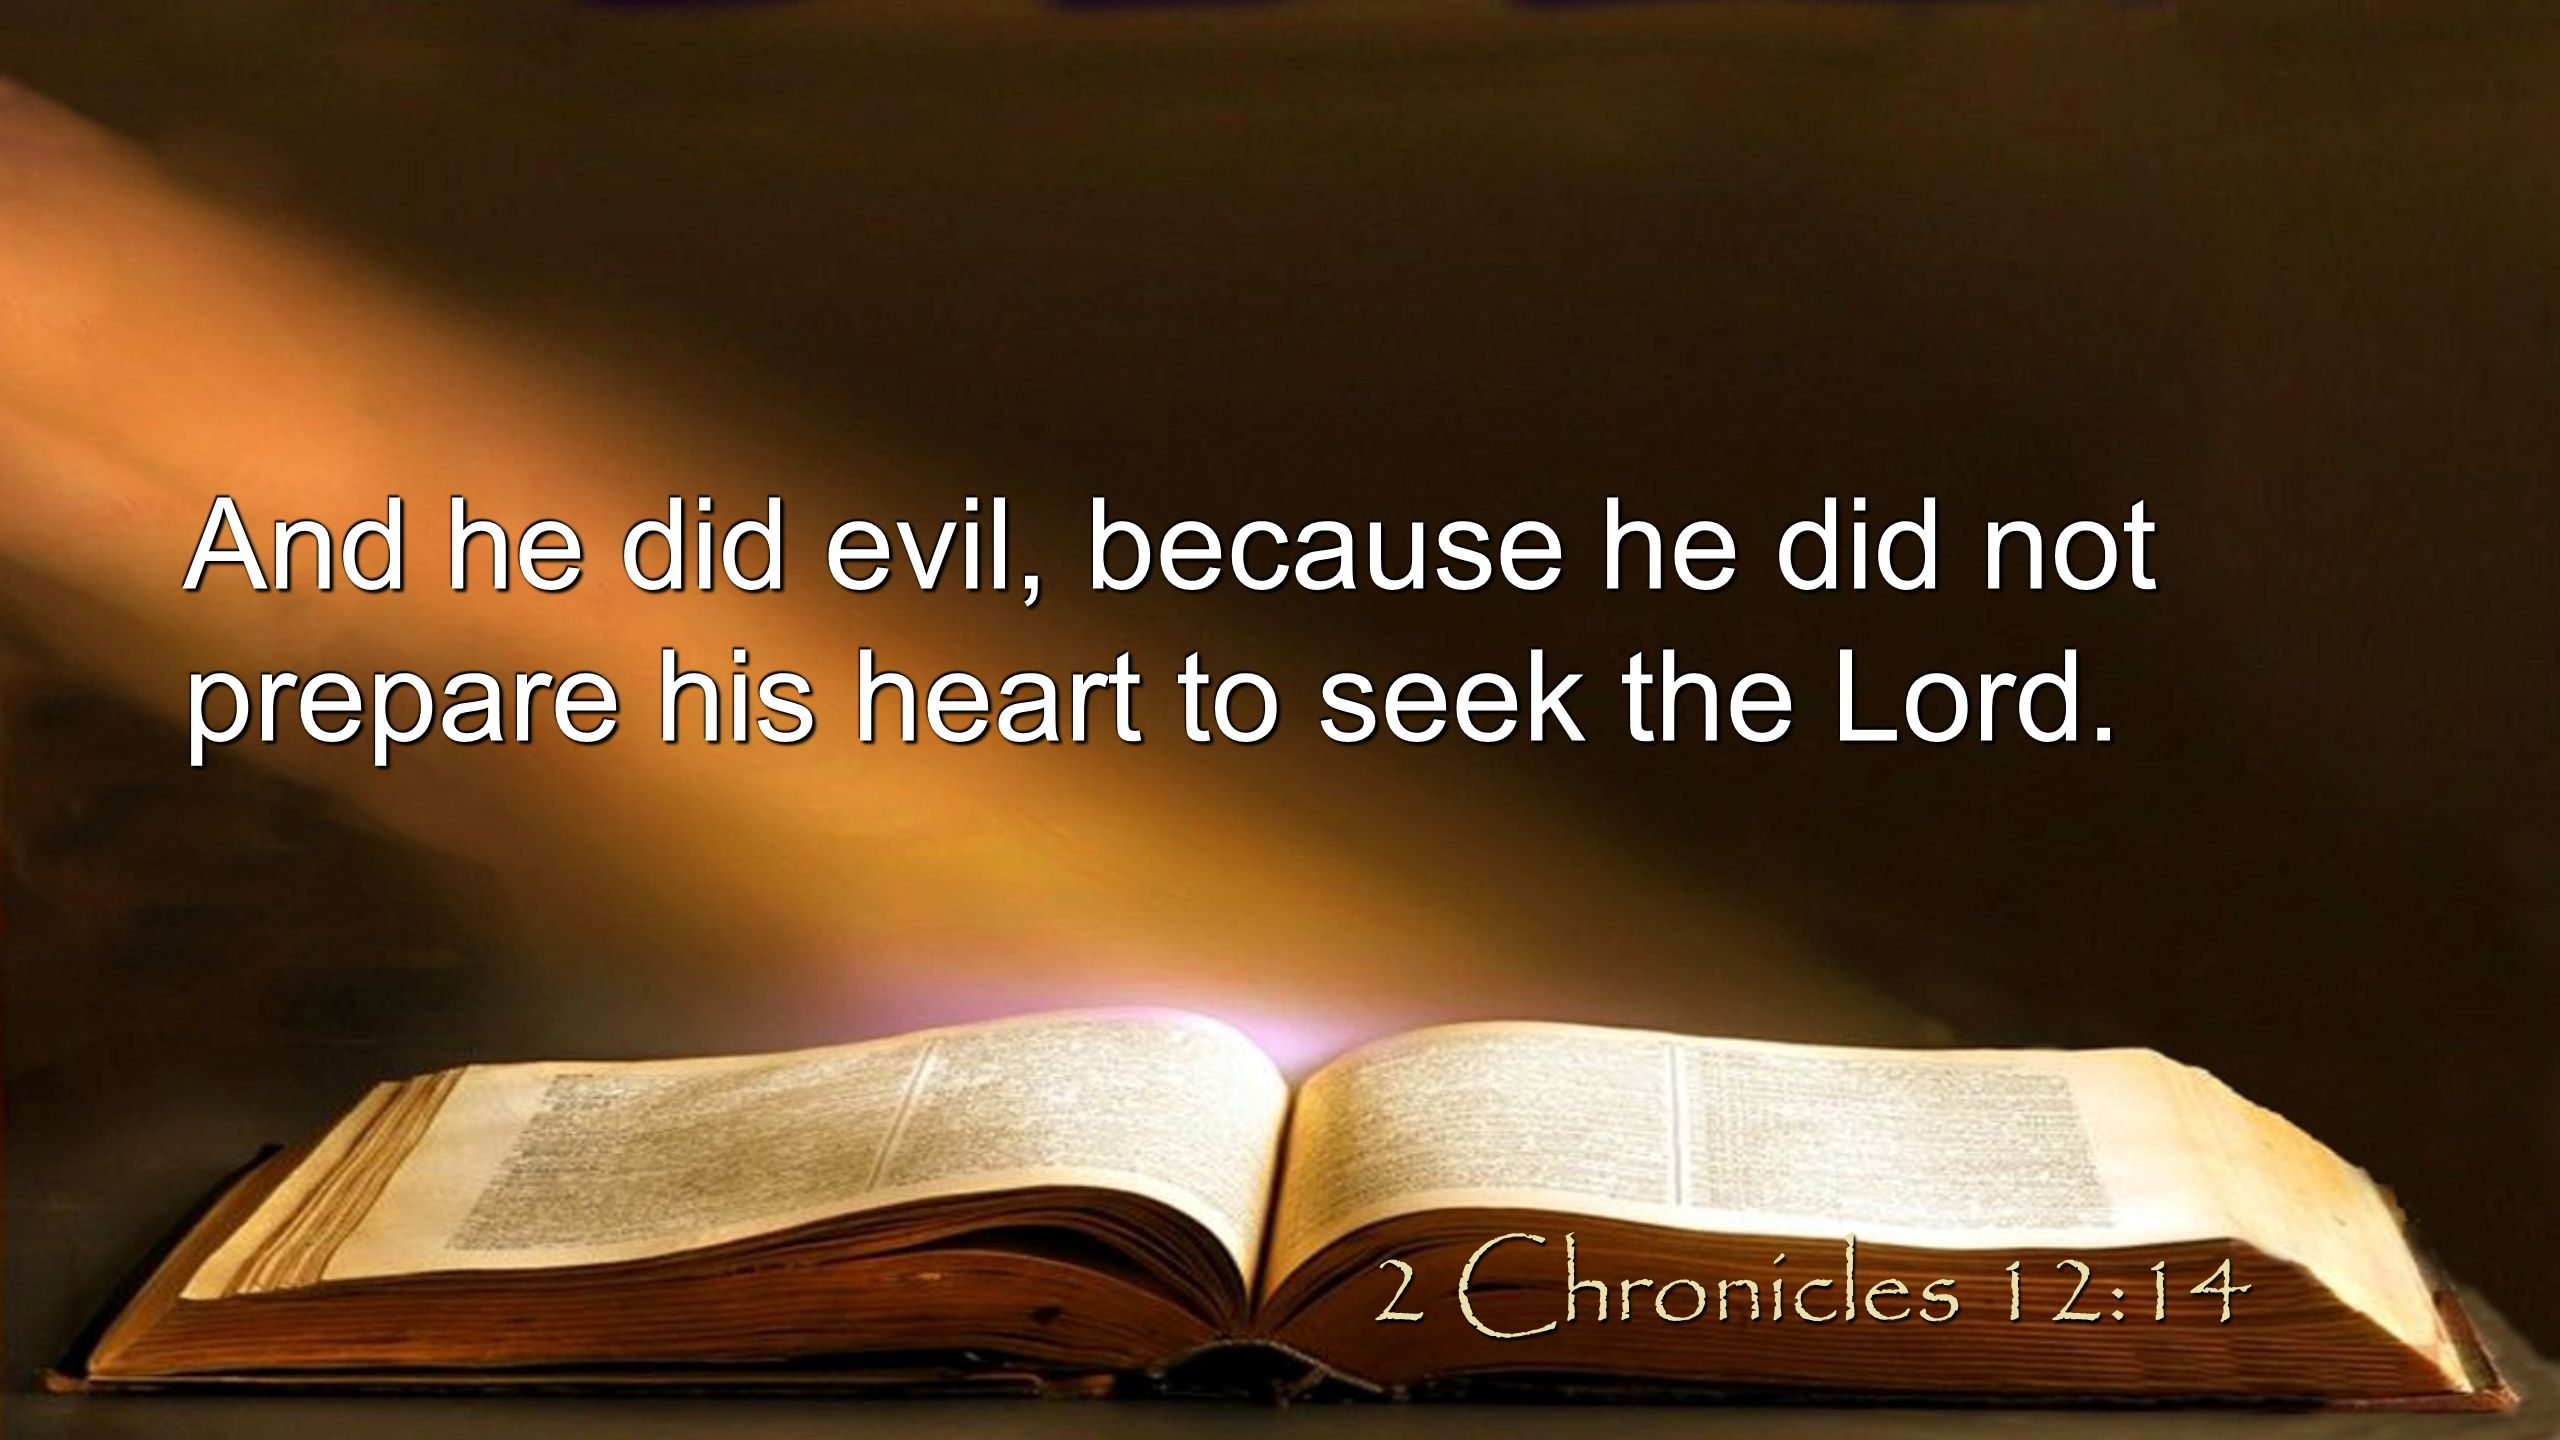 And he did evil, because he did not prepare his heart to seek the Lord. 2 Chronicles 12:14